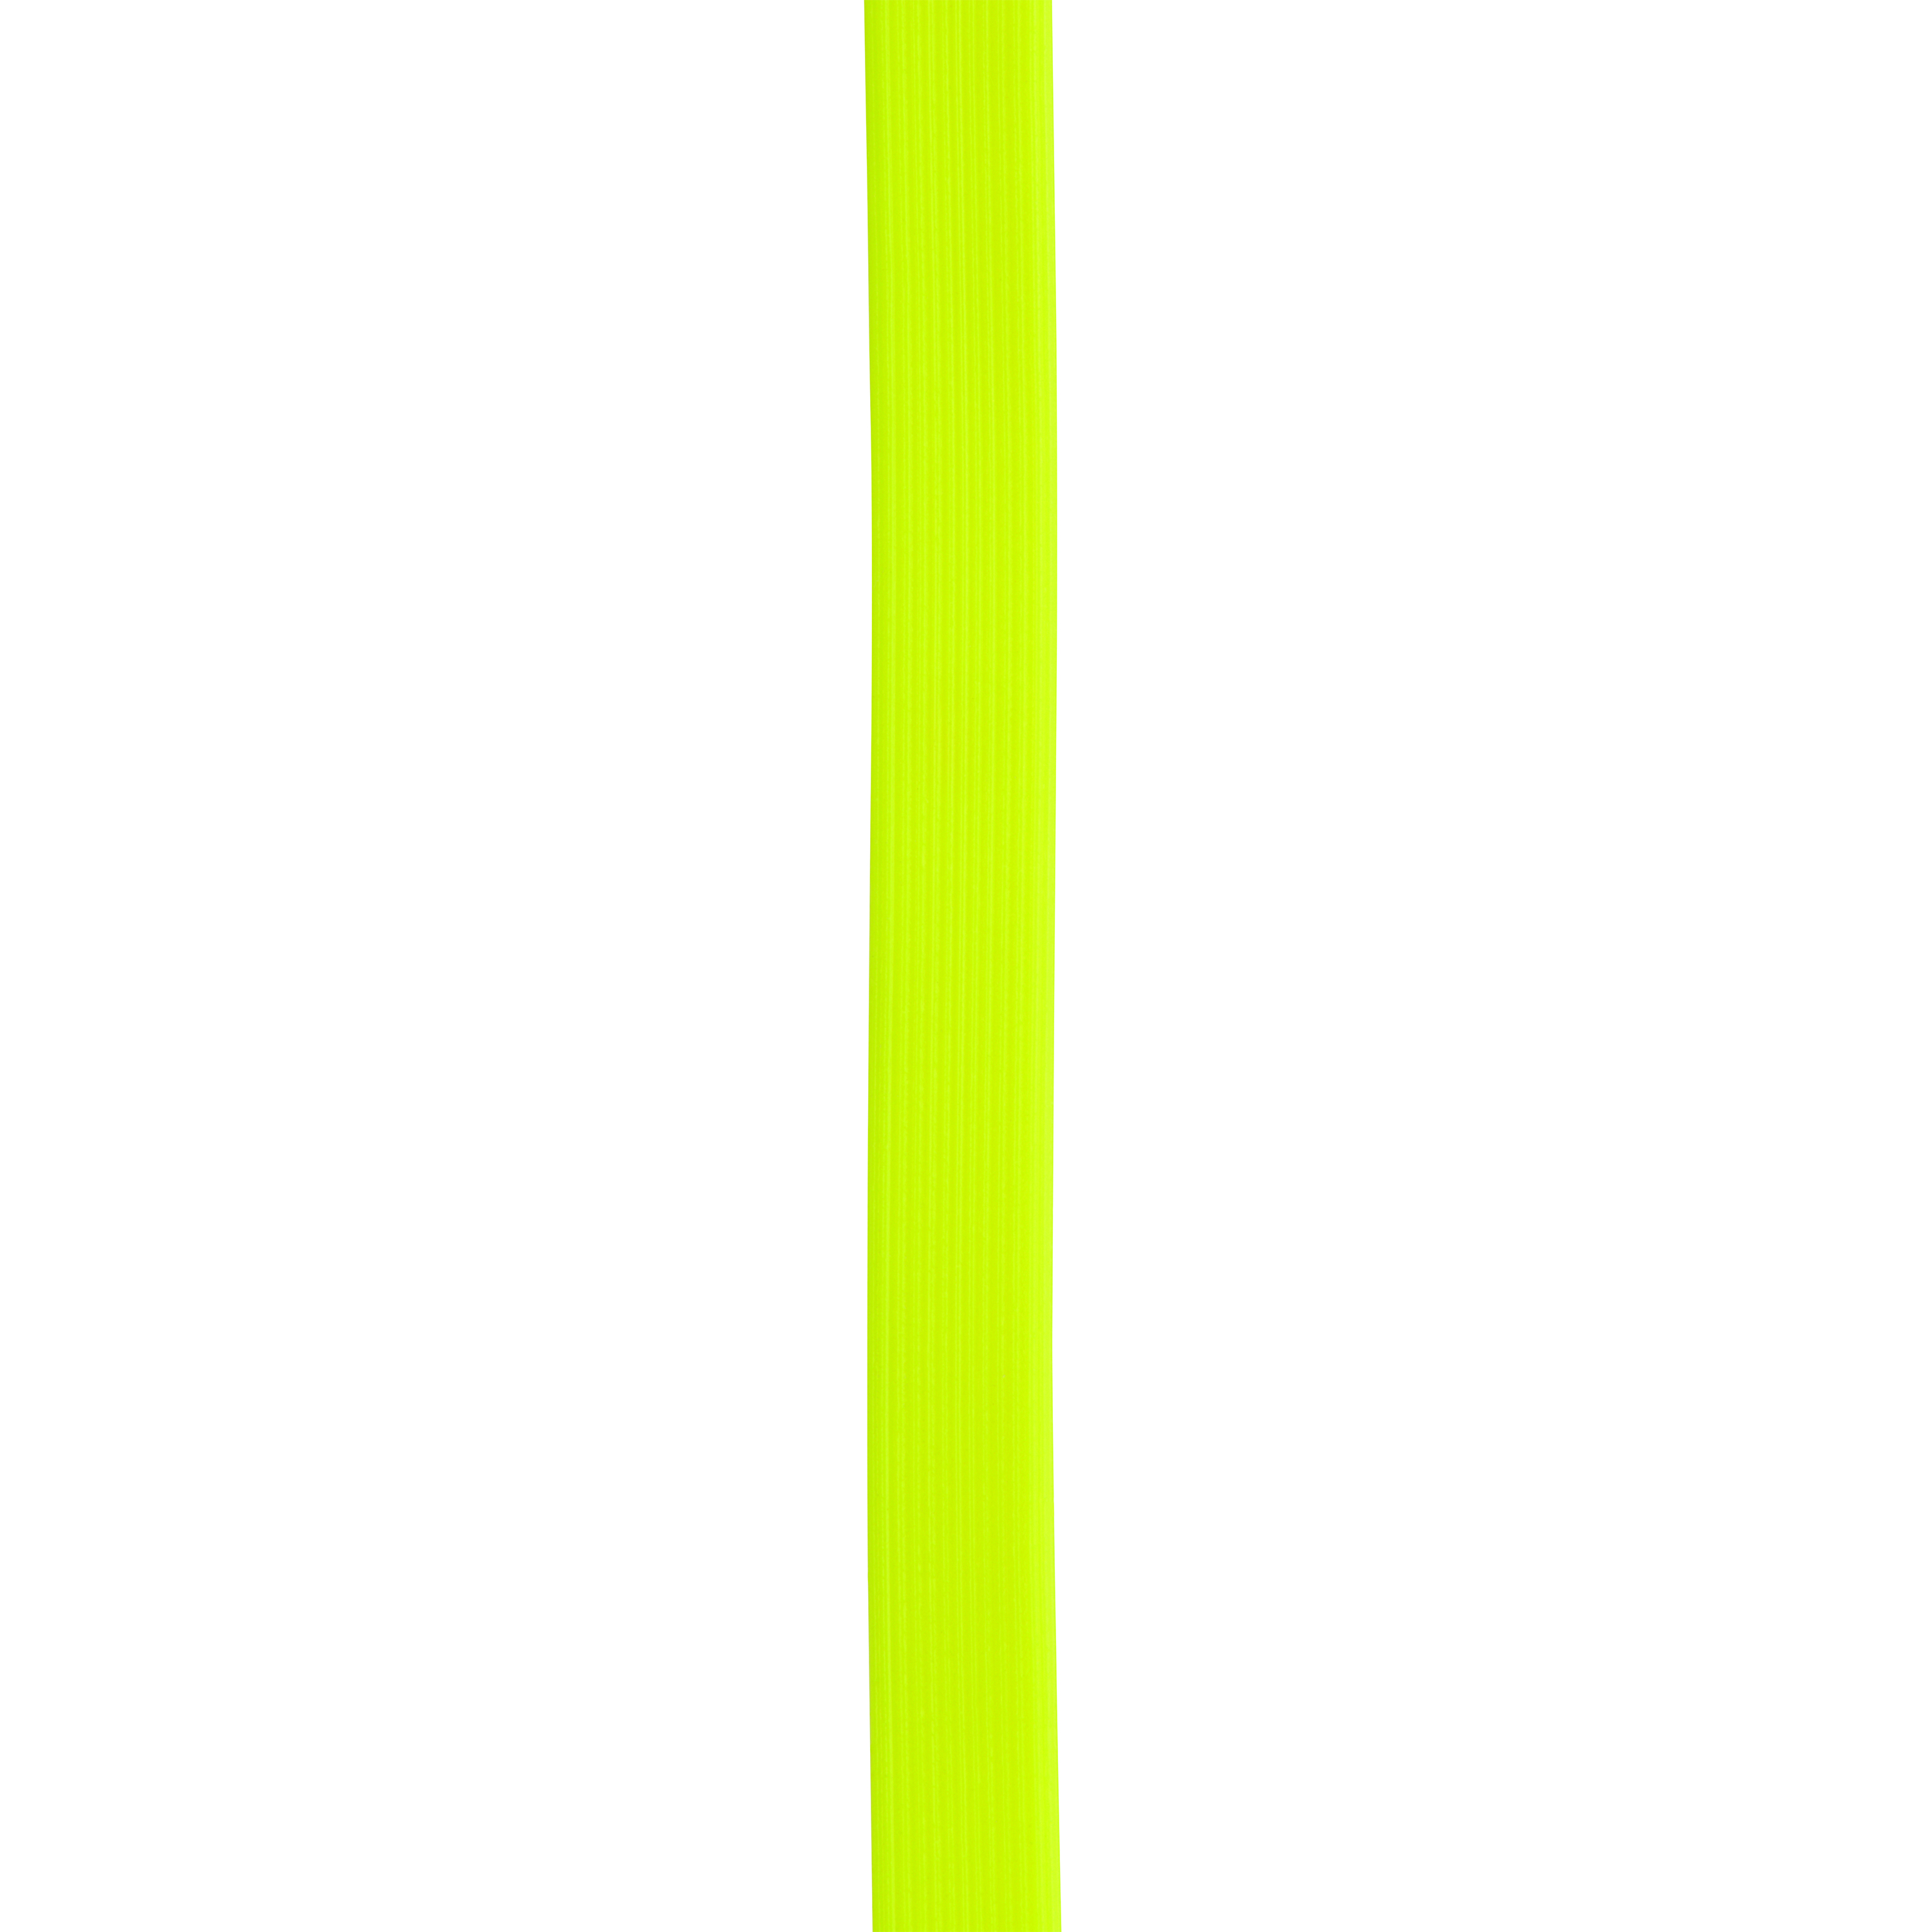 KBL-33-2R7 - NITE IZE KnotBone Stretch Laces - Neon Yellow